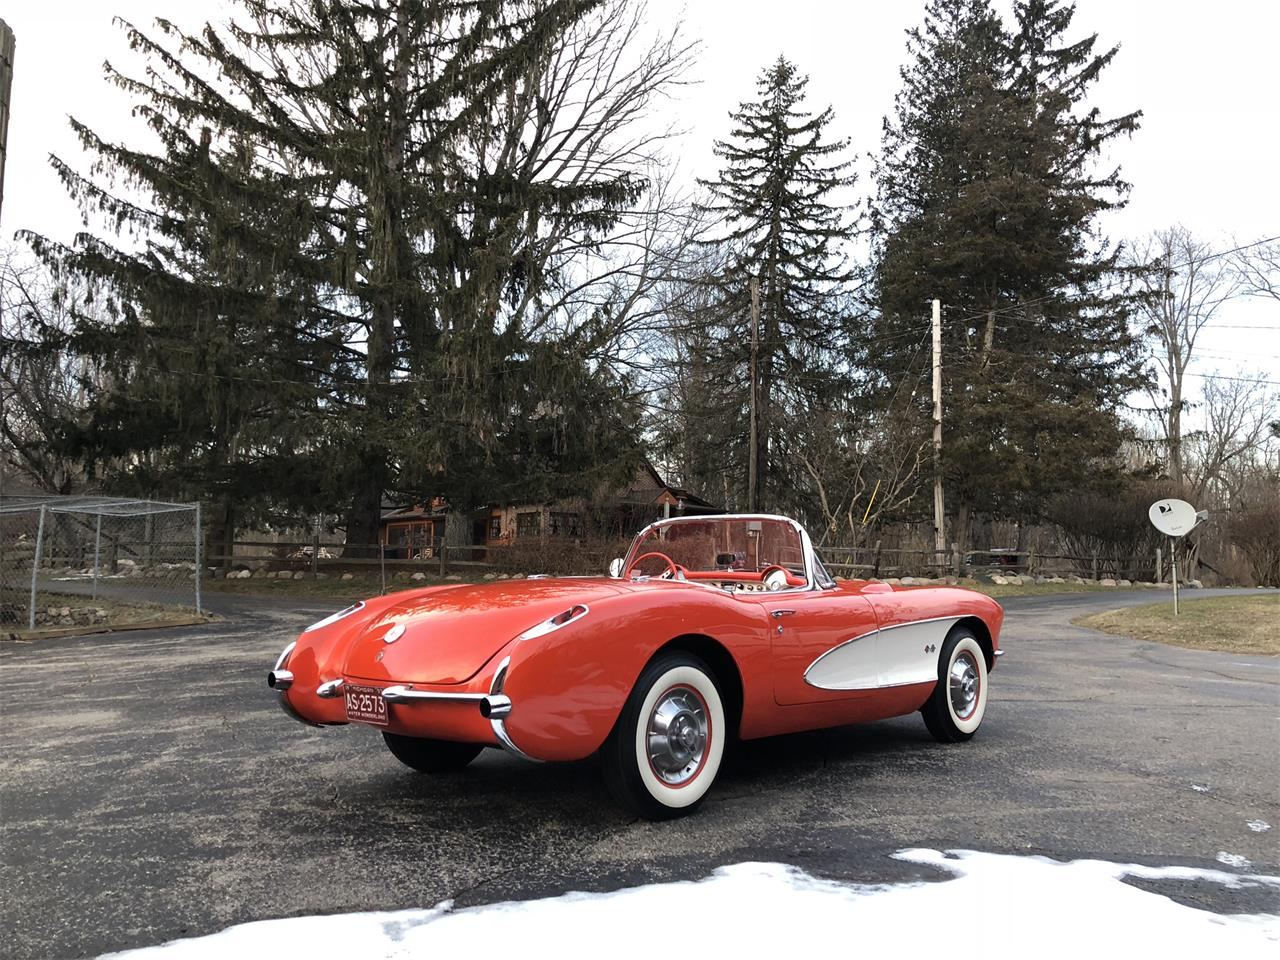 Large Picture of '57 Chevrolet Corvette located in Kokomo Indiana Auction Vehicle Offered by Earlywine Auctions - MYHK